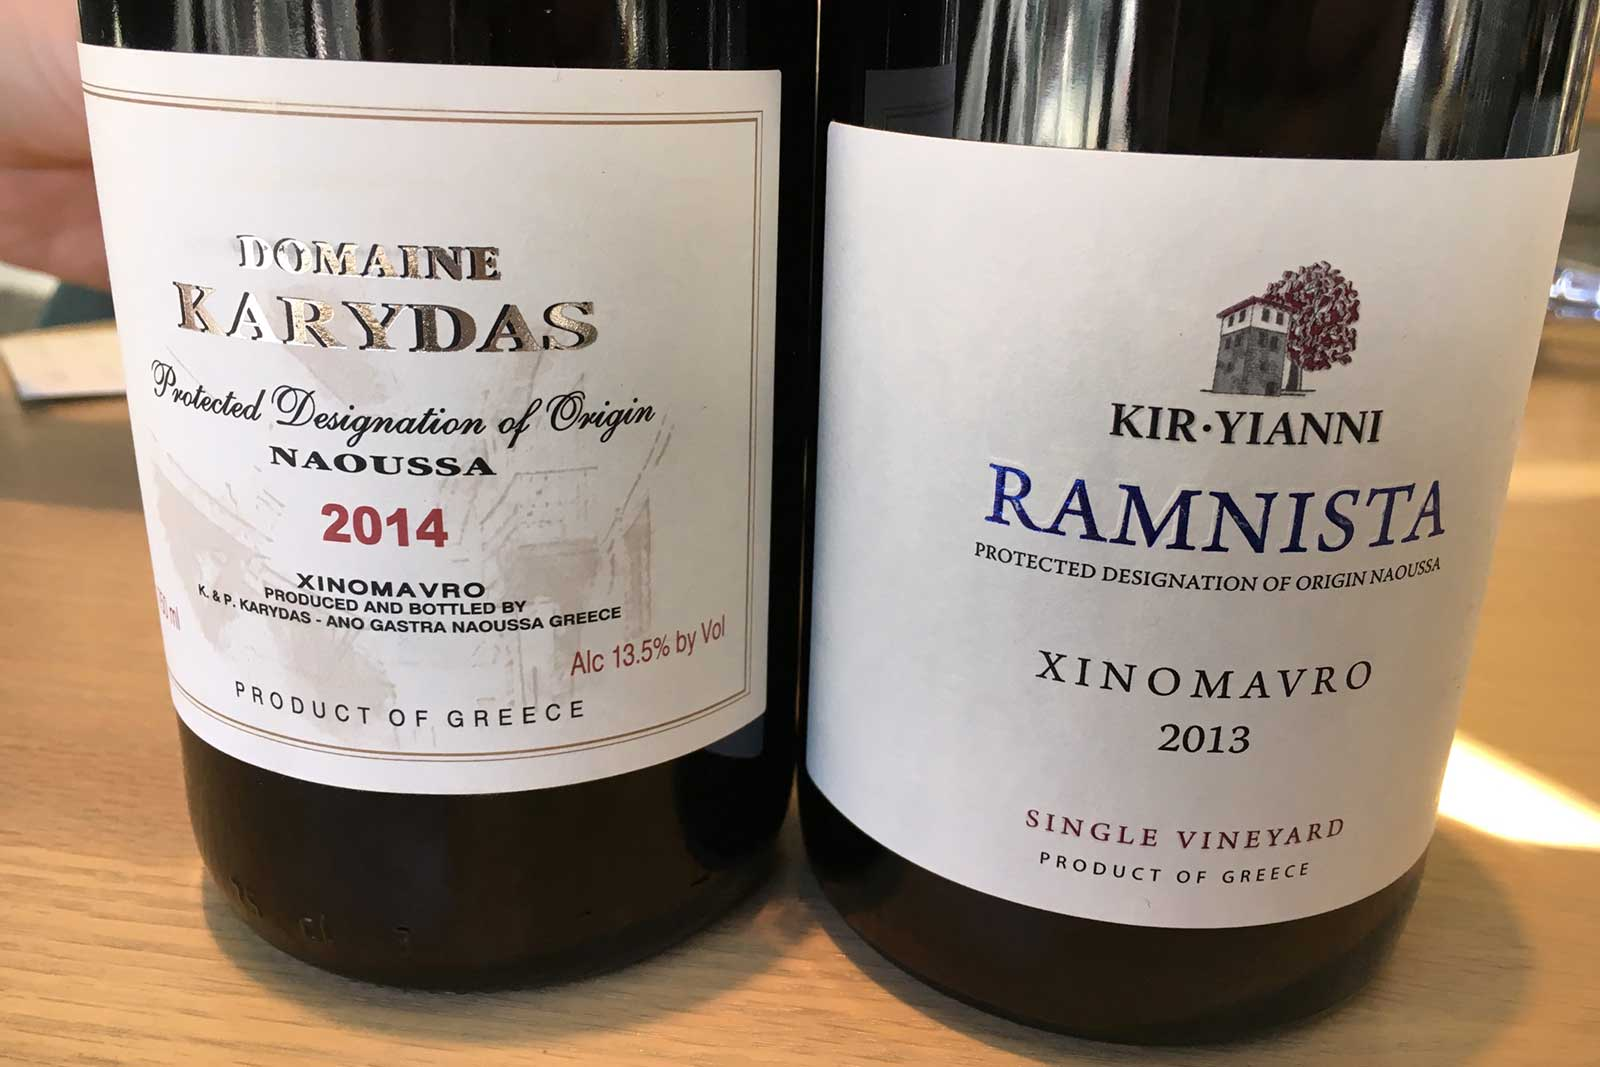 "2014 Domaine Karydas Naoussa Xinomavro and the 2013 Kir-Yianni Estate ""Ramnista"" Xinomavro ©Kevin Day/Opening a Bottle"